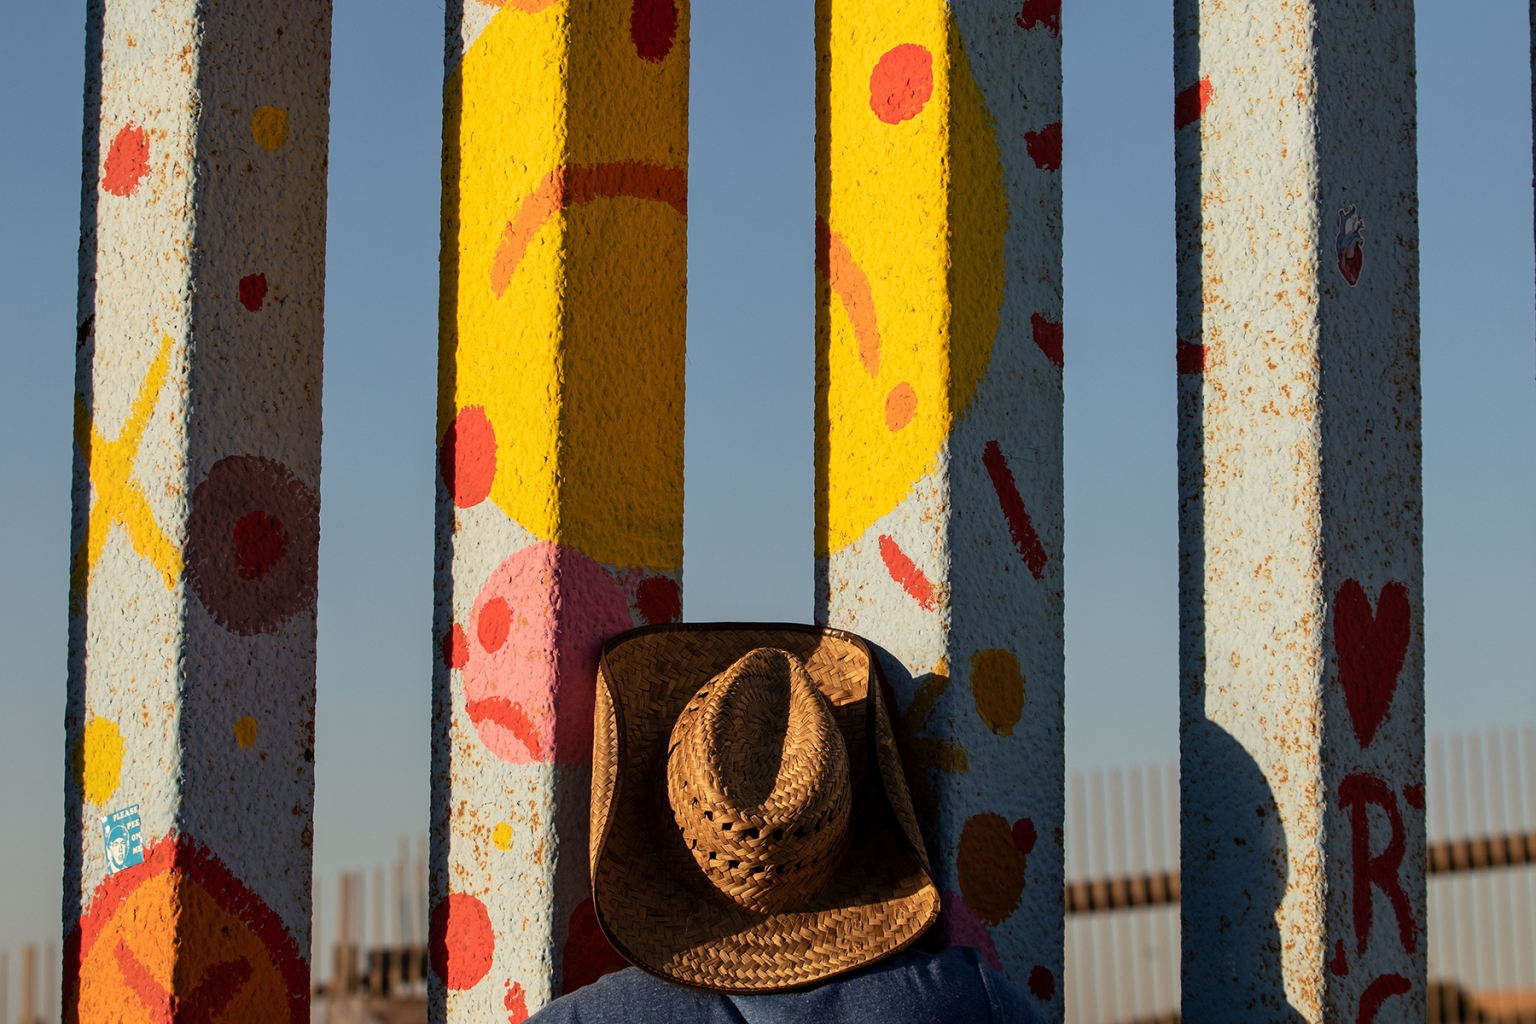 A Central American migrant looks through the U.S.-Mexico border fence in Playas de Tijuana, Mexico, on Nov. 14. GUILLERMO ARIAS/AFP/Getty Images